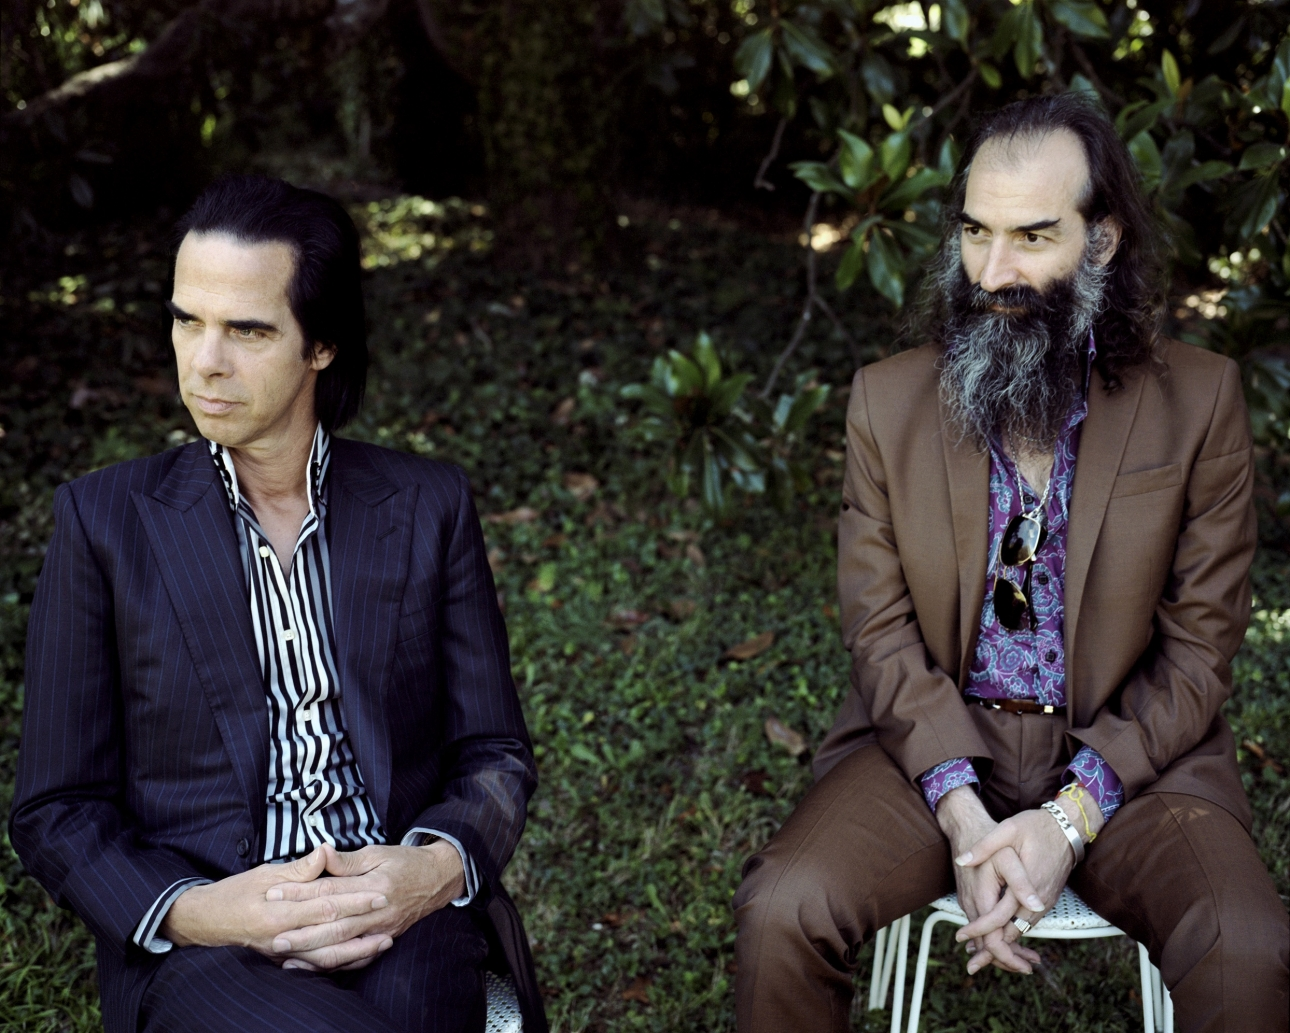 NICK_cave_WARREN_ellis__5A_HI-RES_CAT_STEVENS_copy_1290_1033